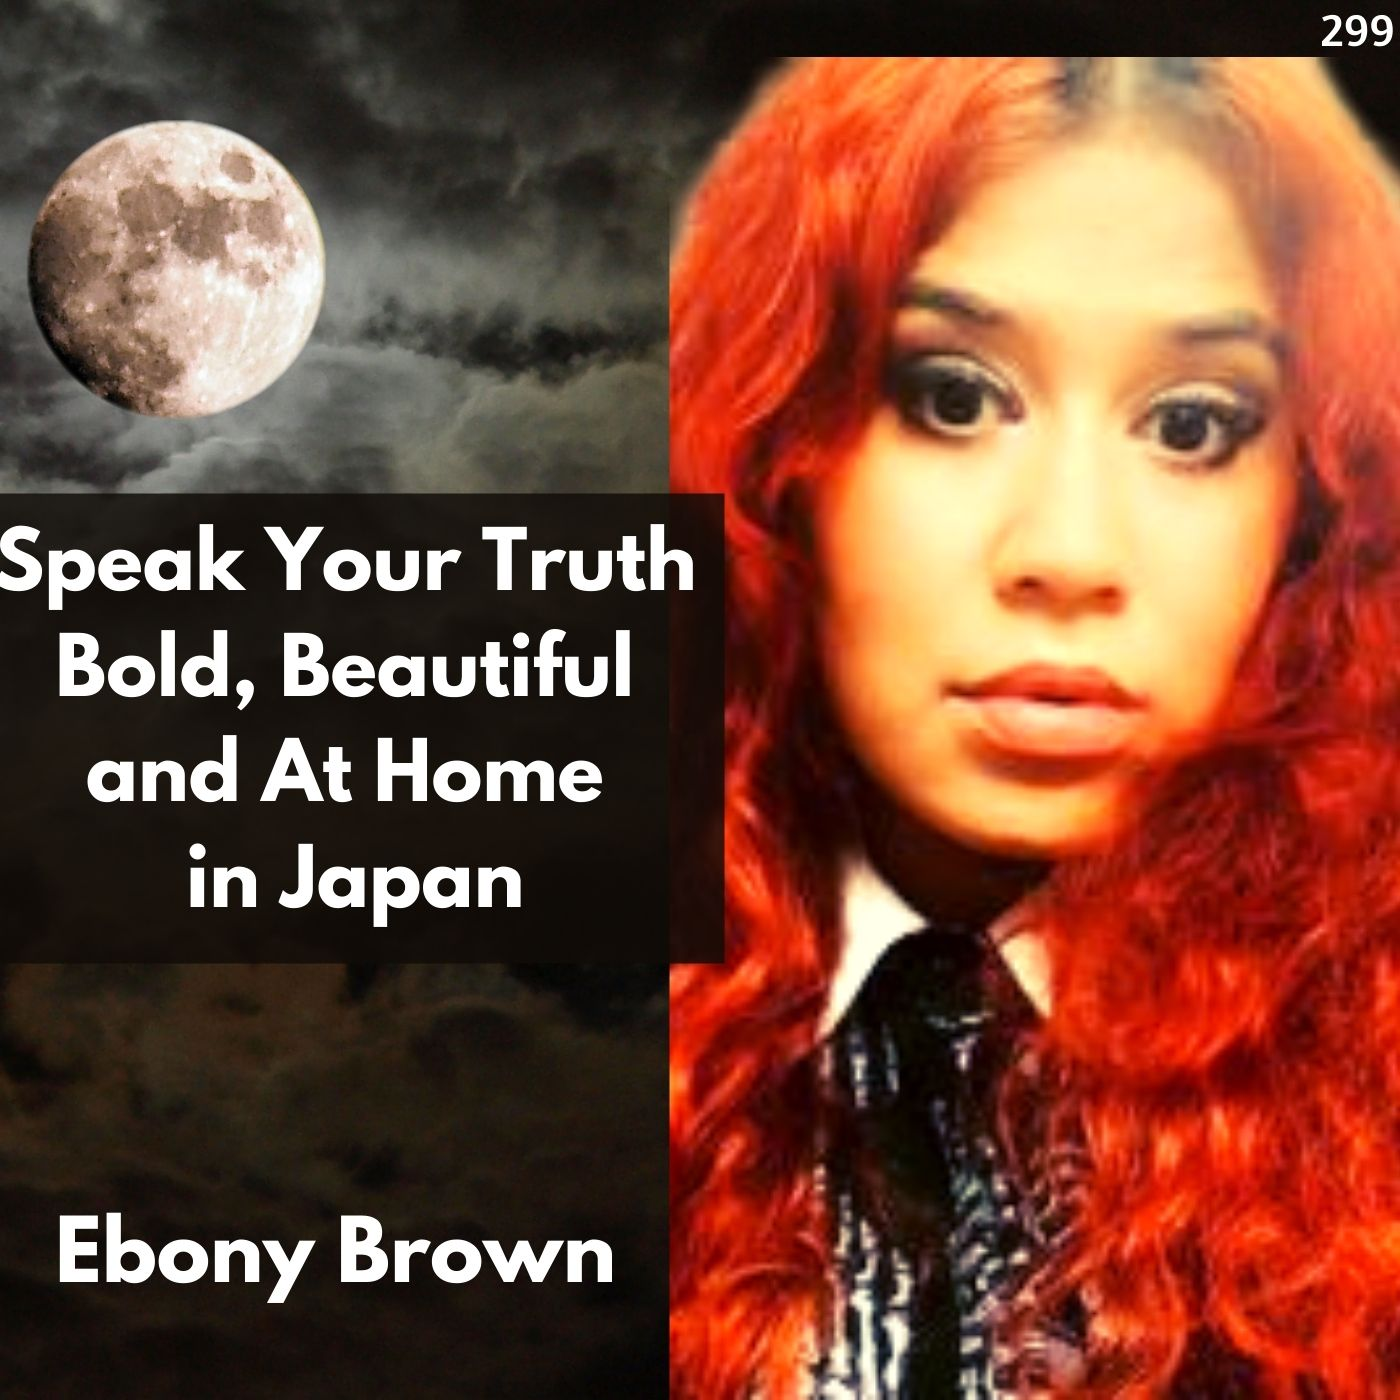 Speak Your Truth - Bold, Beautiful and At Home in Japan | Interview with Poet Ebony Brown